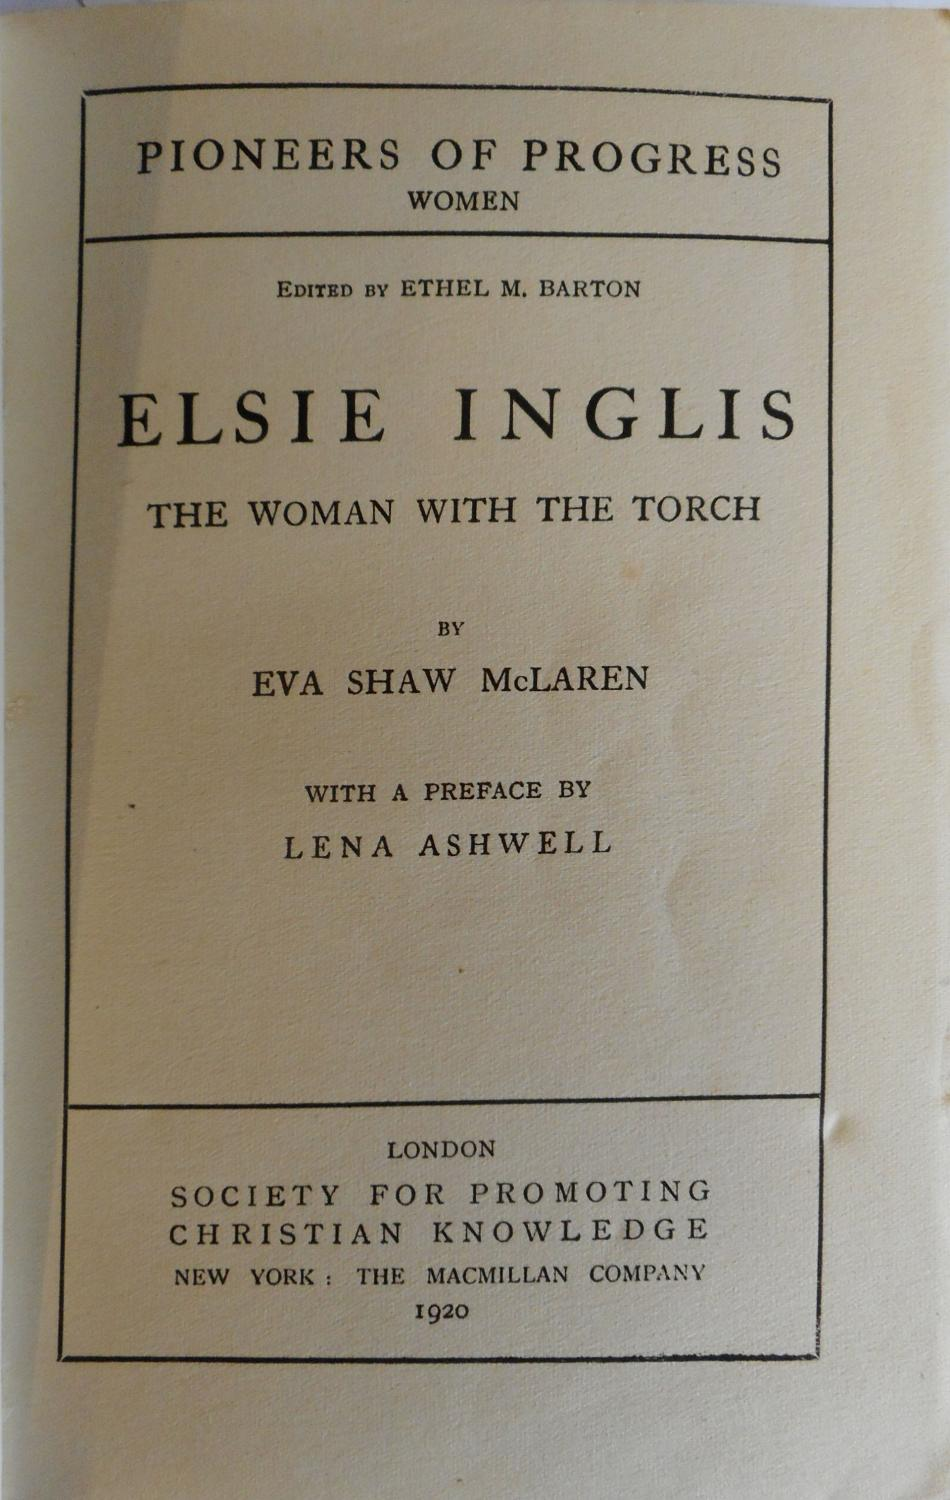 The Woman with the Torch - Elsie Inglis - title page (SPCK) (image)